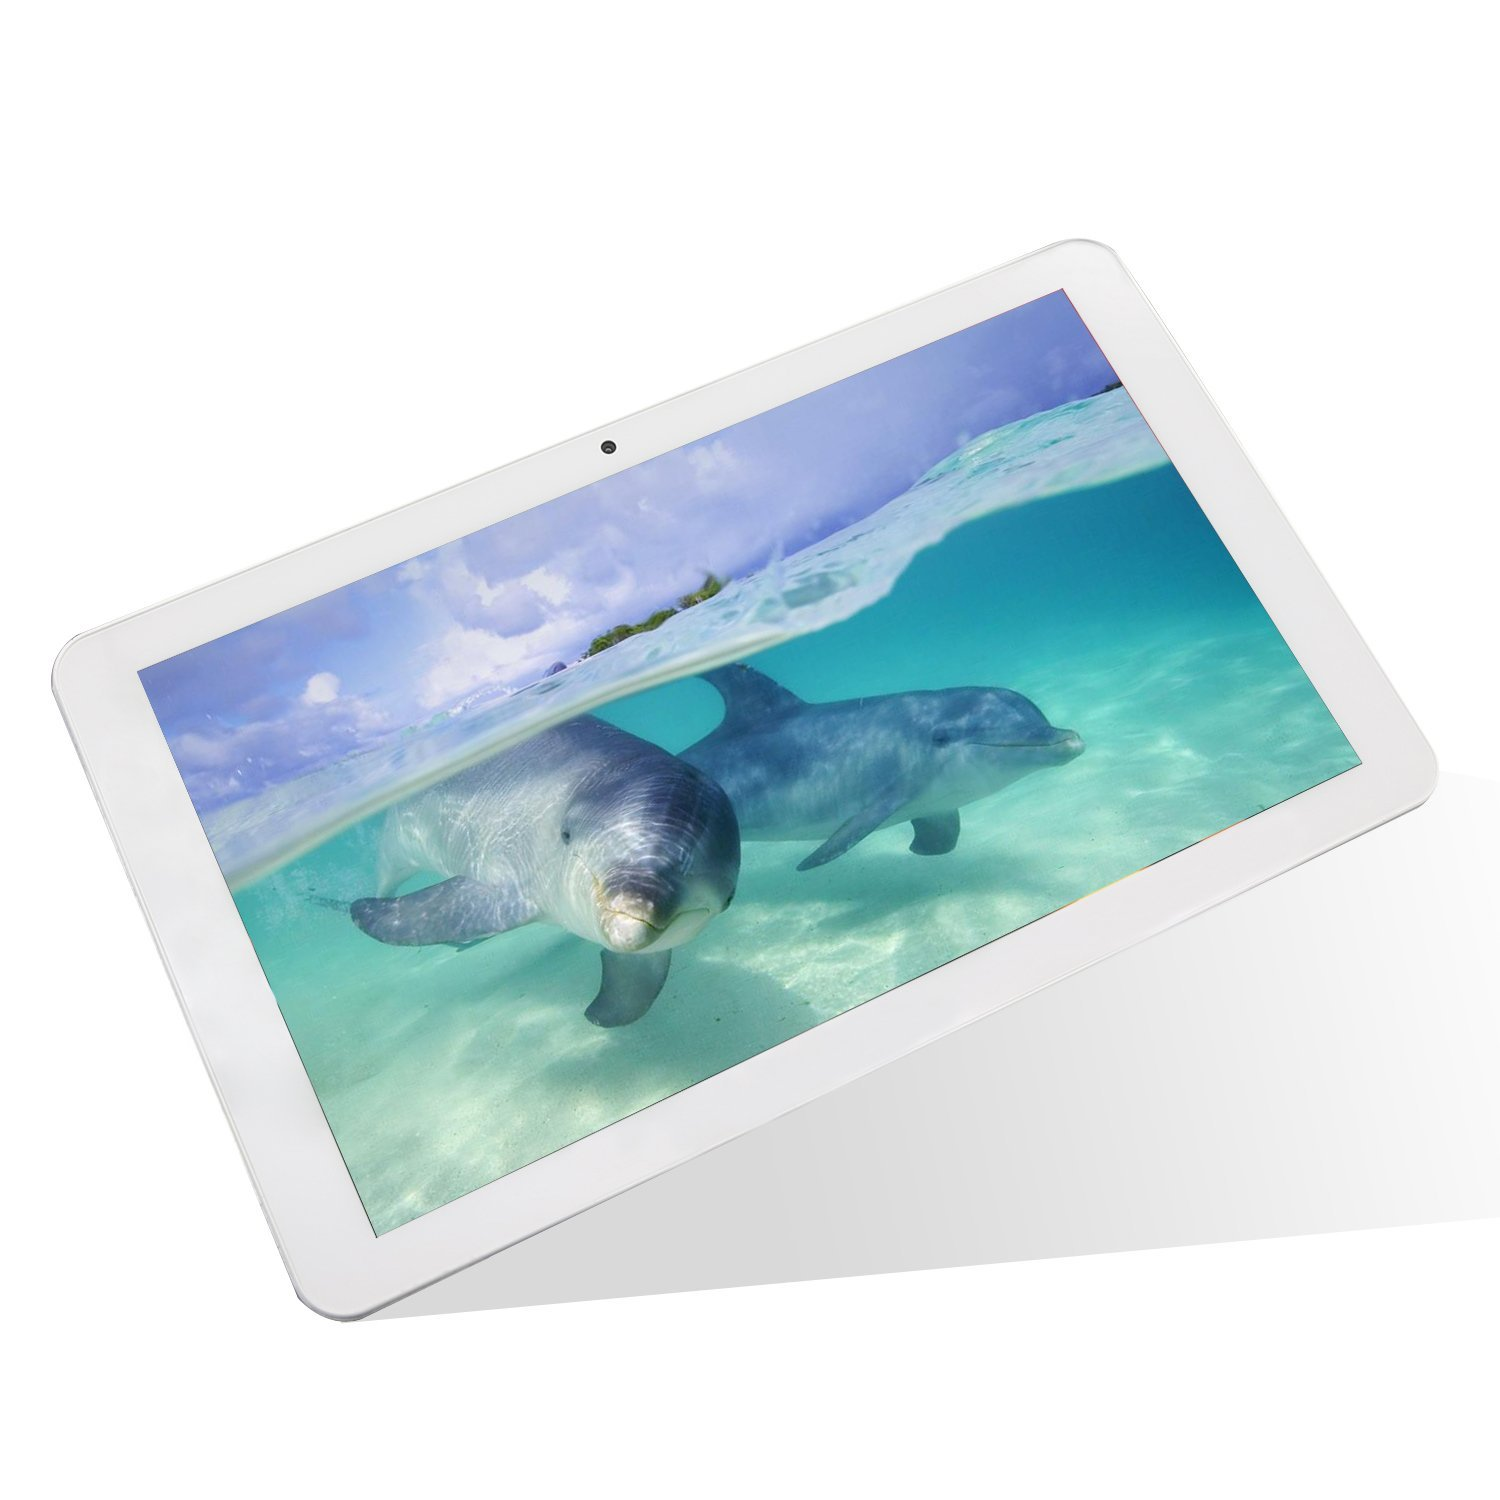 Dragon Touch M10X 101 Inch Tablet